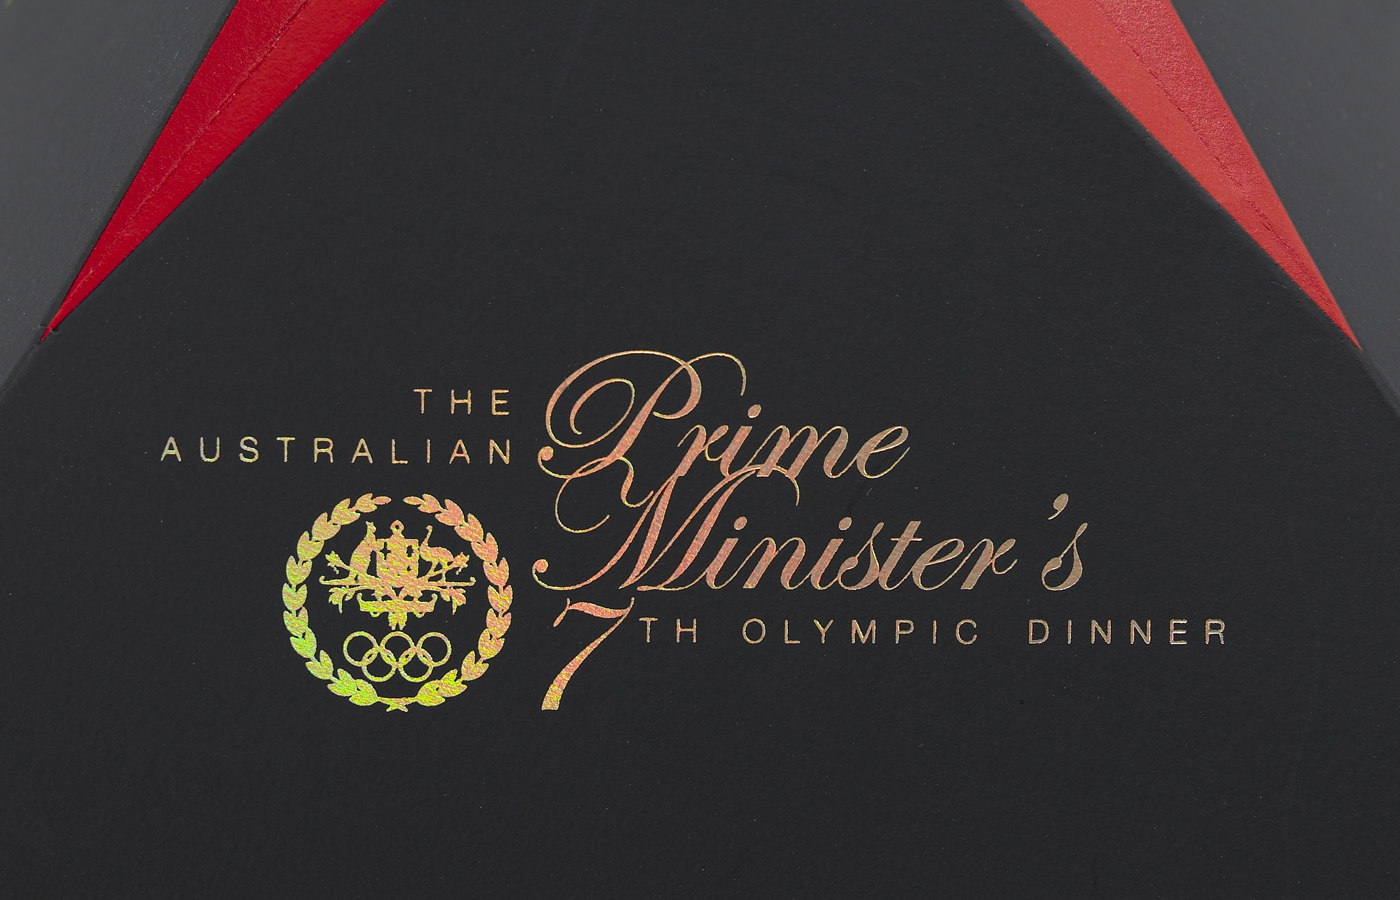 2008 Prime Minster's Olympic Dinner